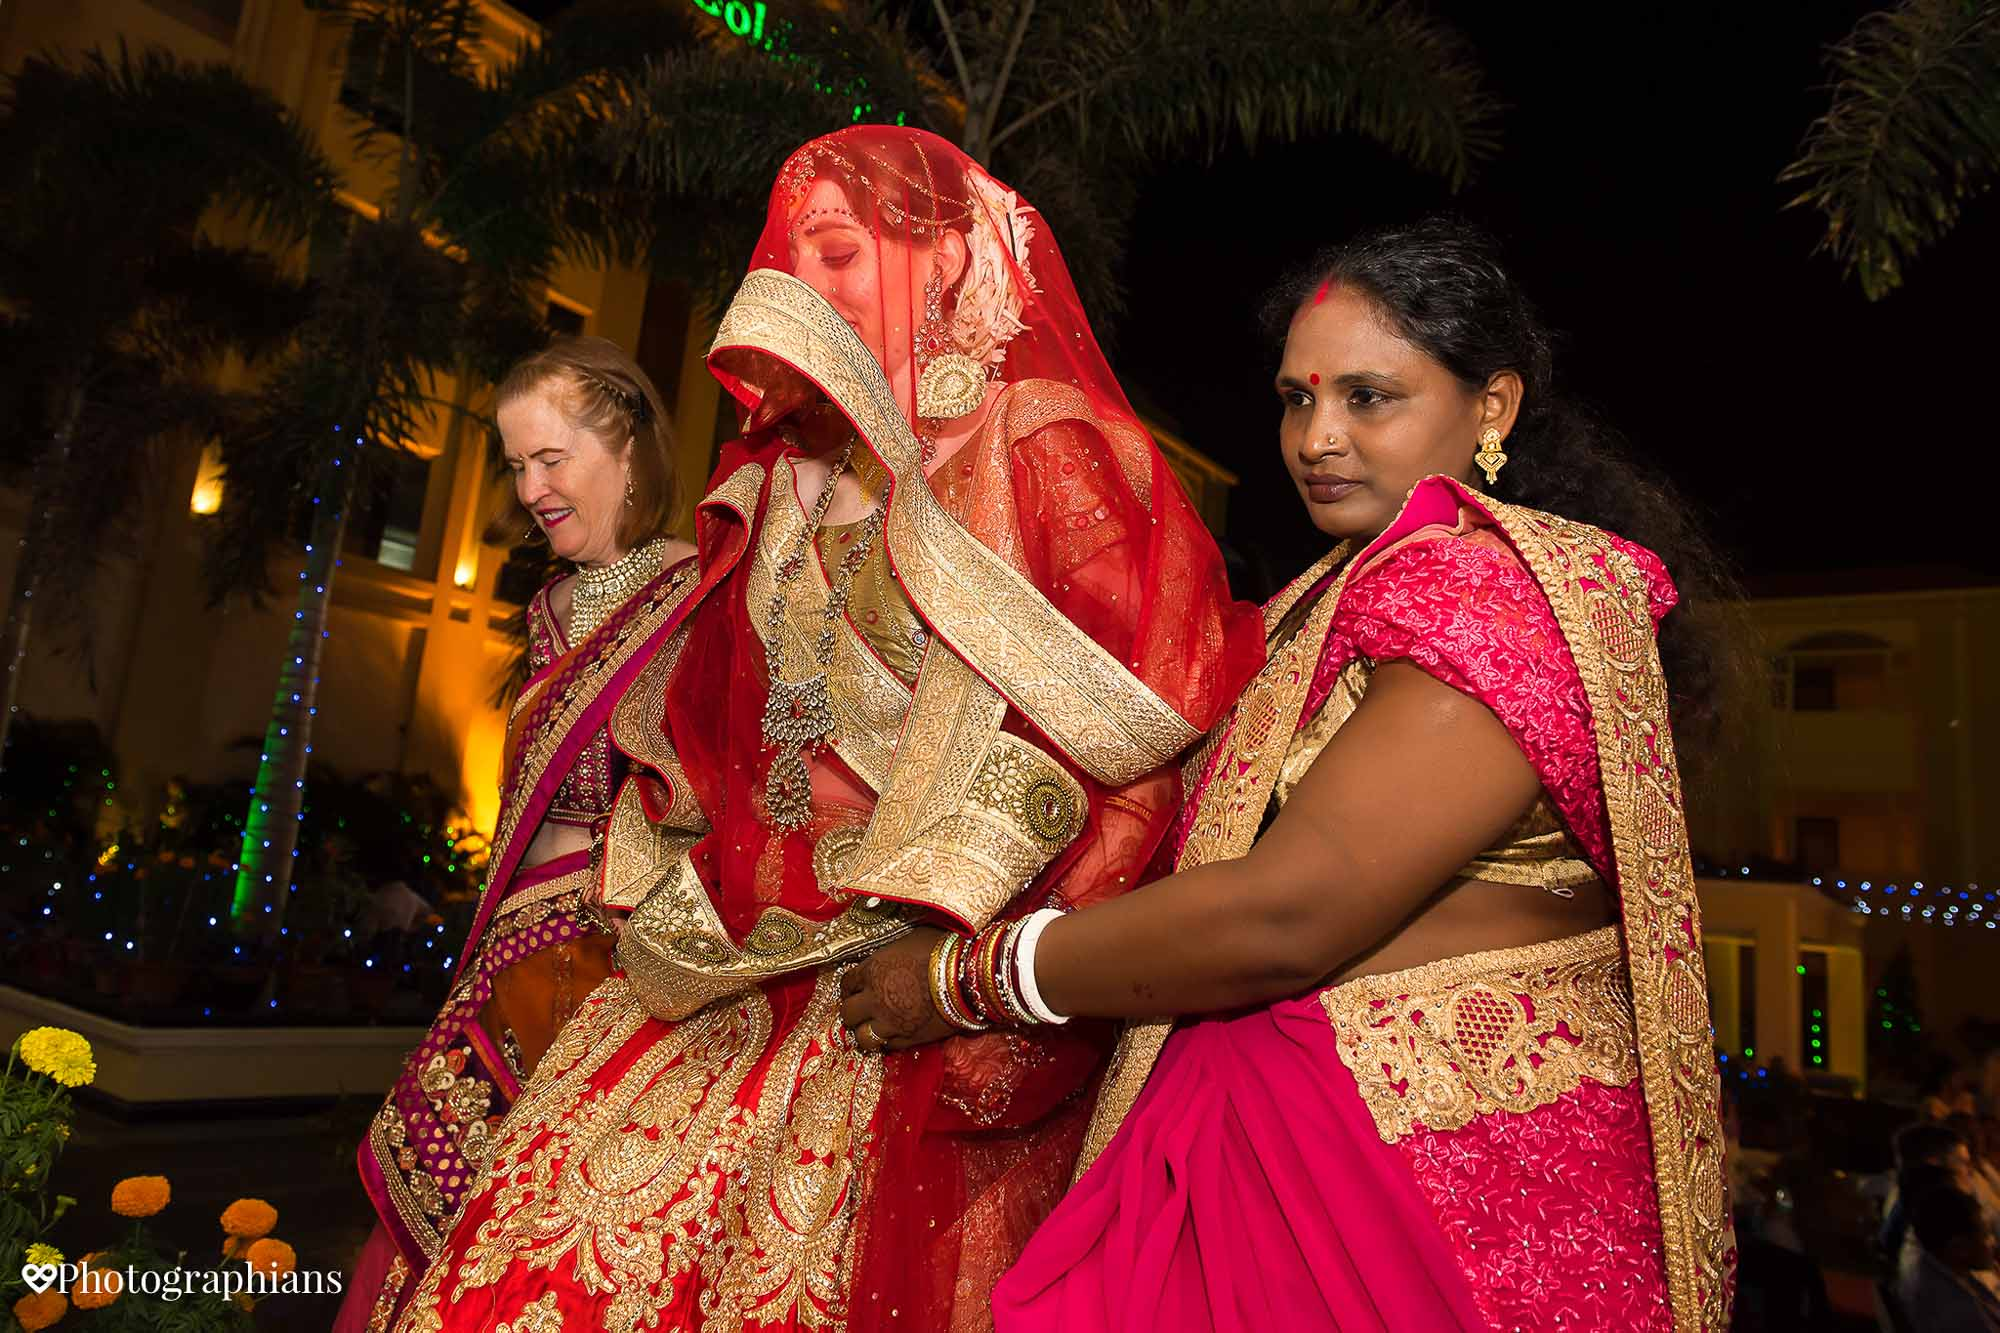 Destination_wedding_Odisa_Kolkata_225